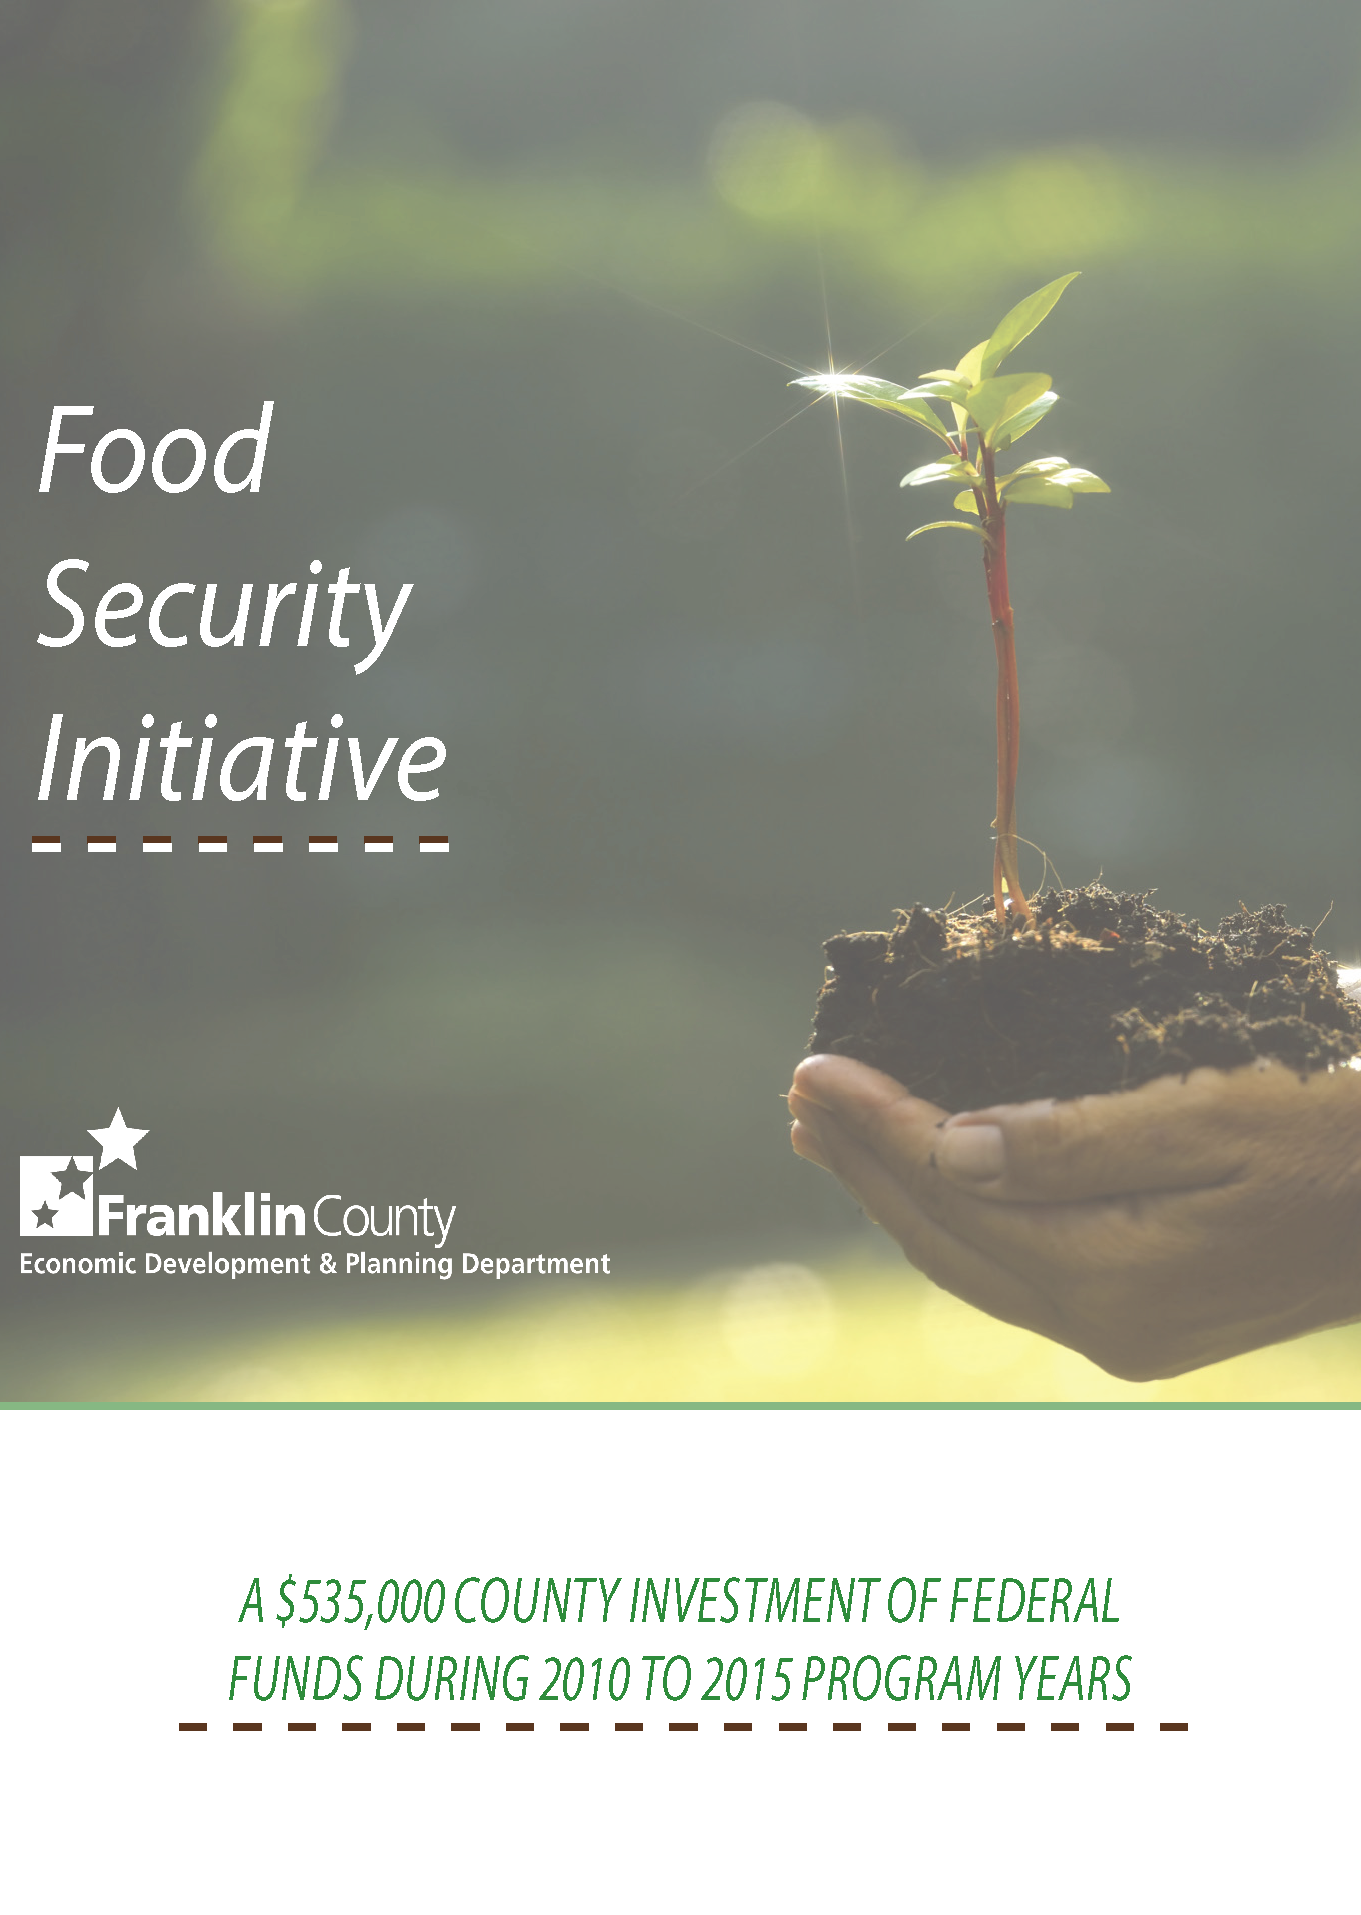 Franklin County Food Security